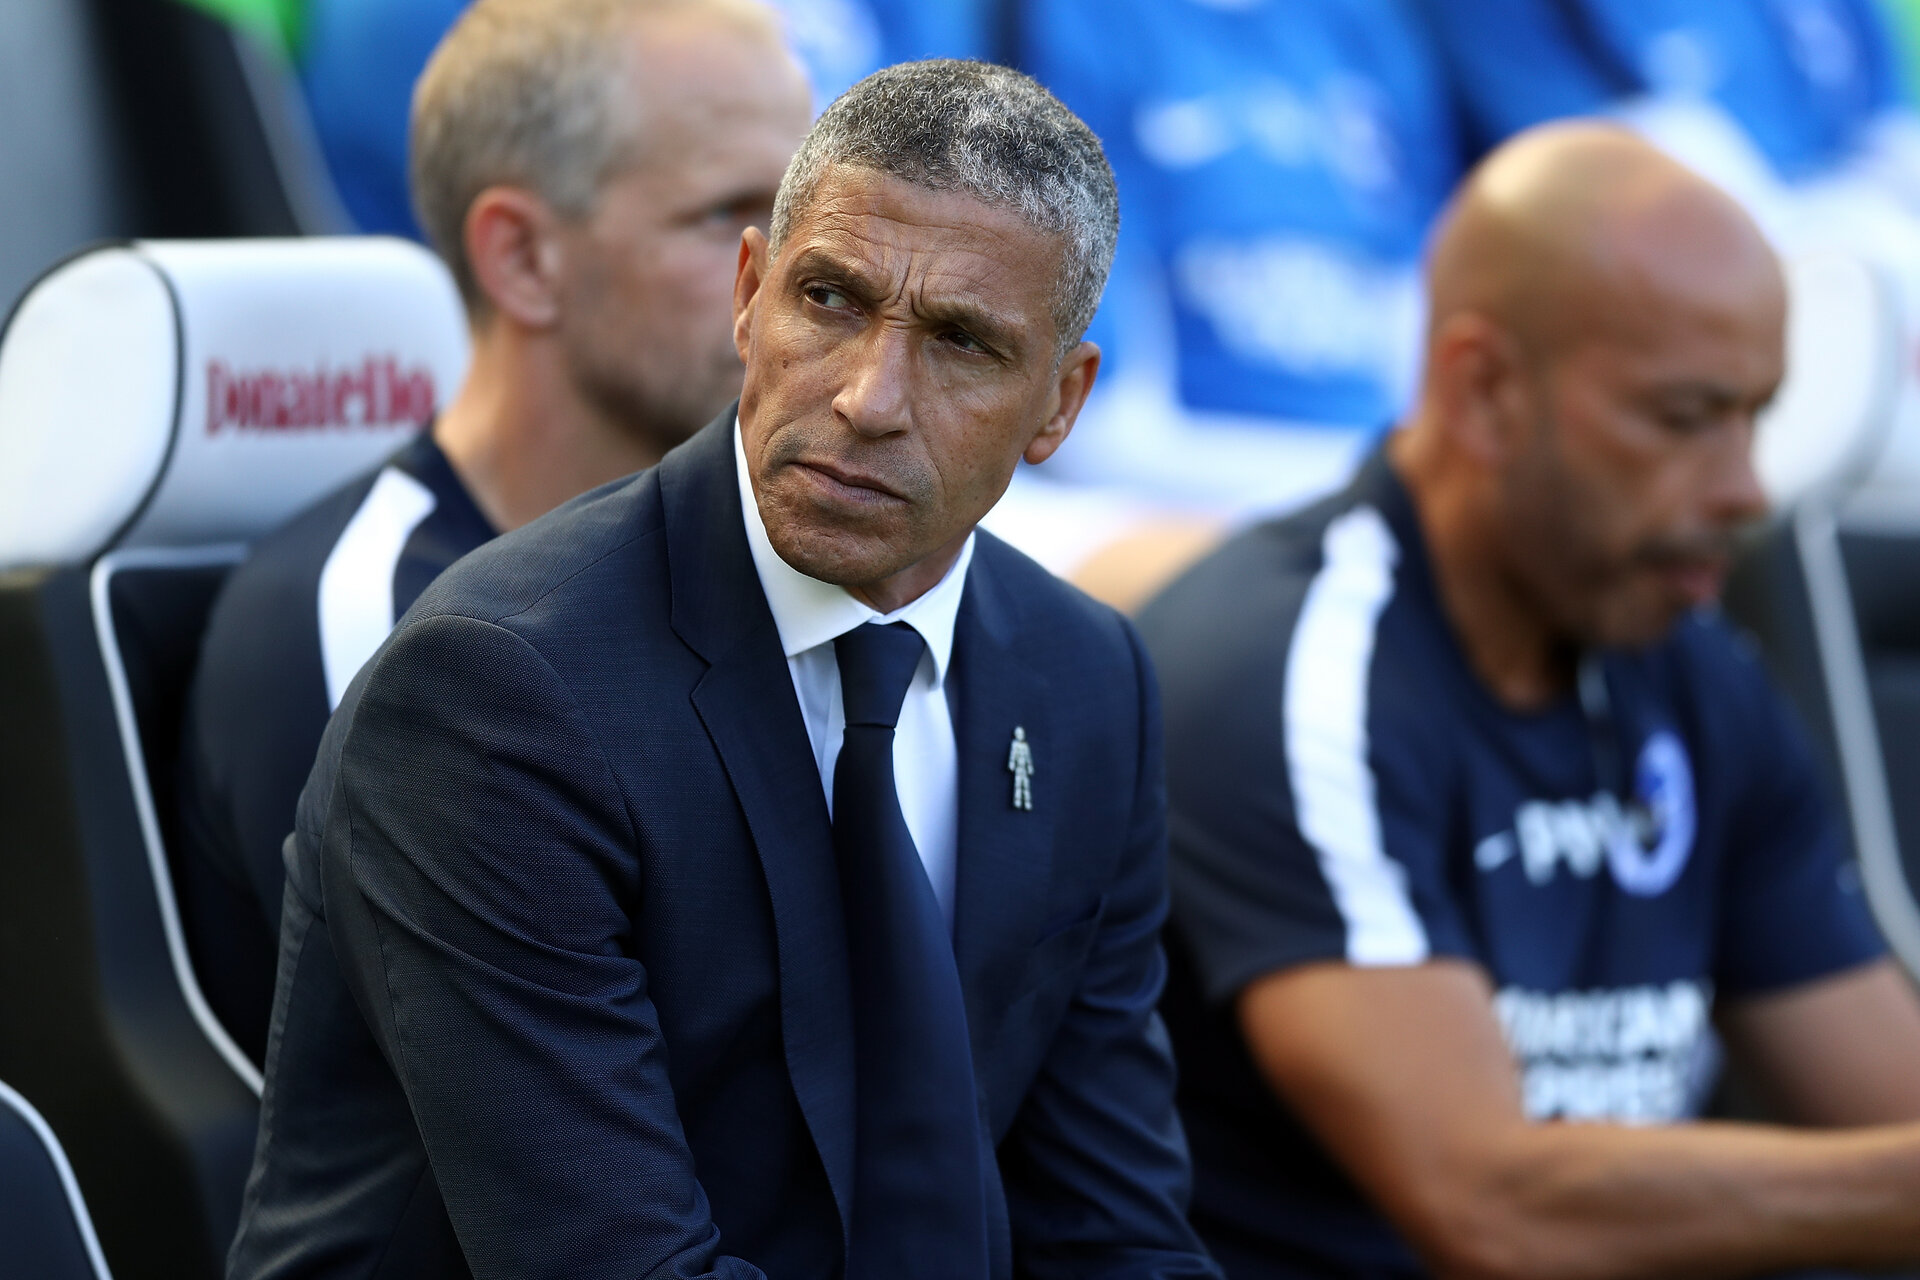 BRIGHTON, ENGLAND - SEPTEMBER 01:  Chris Hughton, Manager of Brighton and Hove Albion looks on prior to the Premier League match between Brighton & Hove Albion and Fulham FC at American Express Community Stadium on September 1, 2018 in Brighton, United Kingdom.  (Photo by Bryn Lennon/Getty Images)